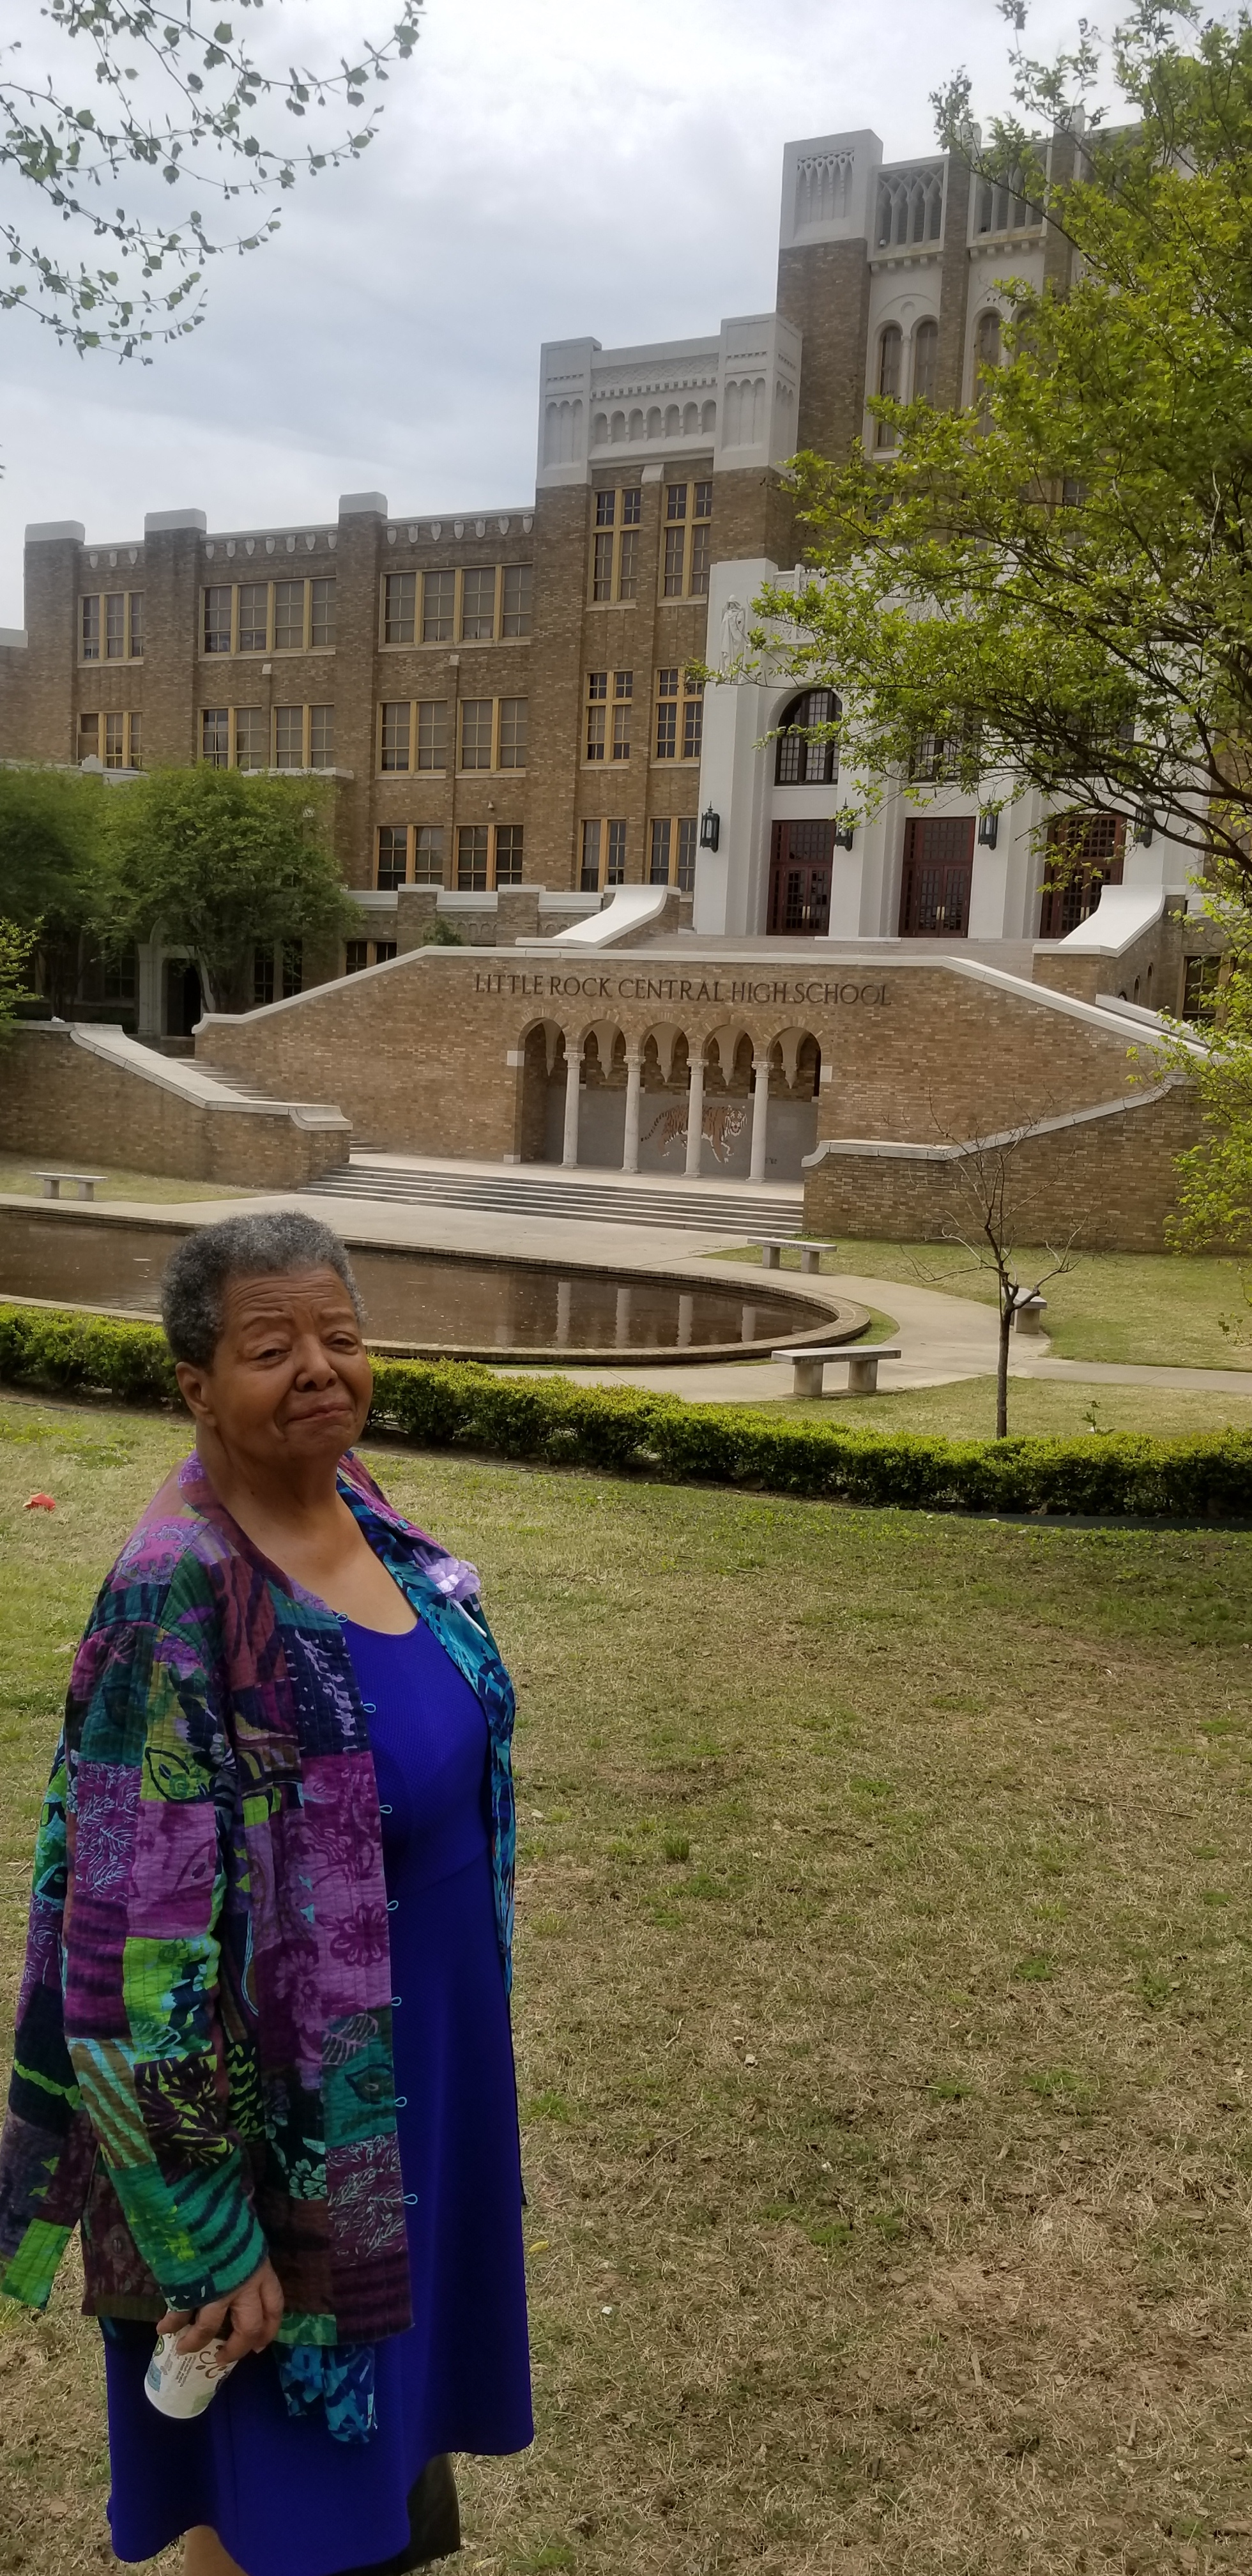 Elizabeth Eckford posing in front of little rock central high school